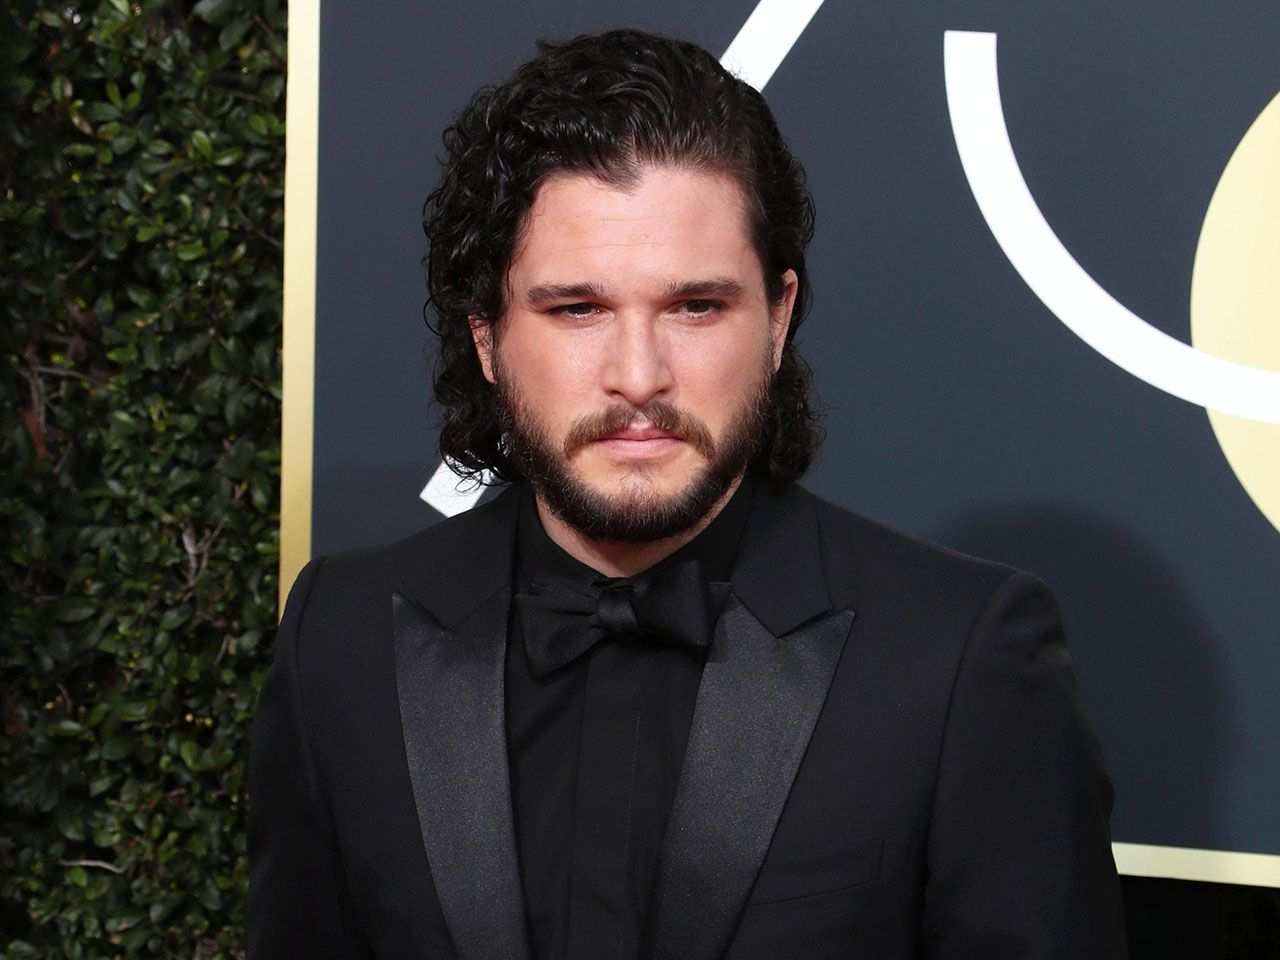 Kit Harington: 'Game of Thrones addio, ora sogno un film sulla boxe'